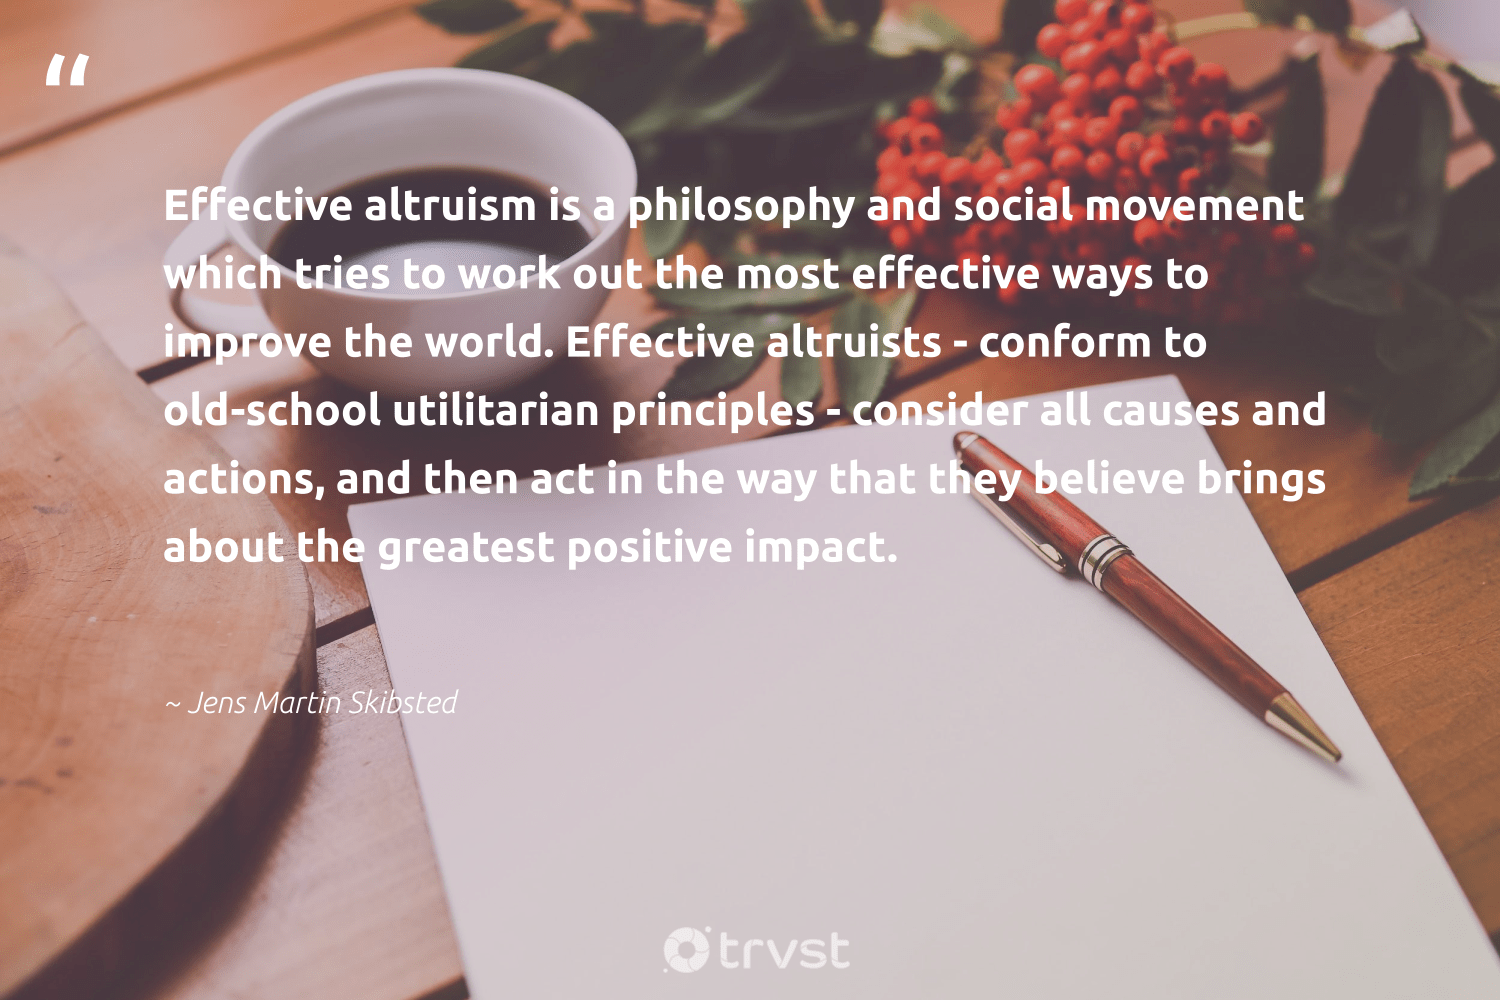 """""""Effective altruism is a philosophy and social movement which tries to work out the most effective ways to improve the world. Effective altruists - conform to old-school utilitarian principles - consider all causes and actions, and then act in the way that they believe brings about the greatest positive impact.""""  - Jens Martin Skibsted #trvst #quotes #impact #causes #NGO #socialchange #workingtogether #collectiveaction #cause #dogood #bethechange #dotherightthing"""